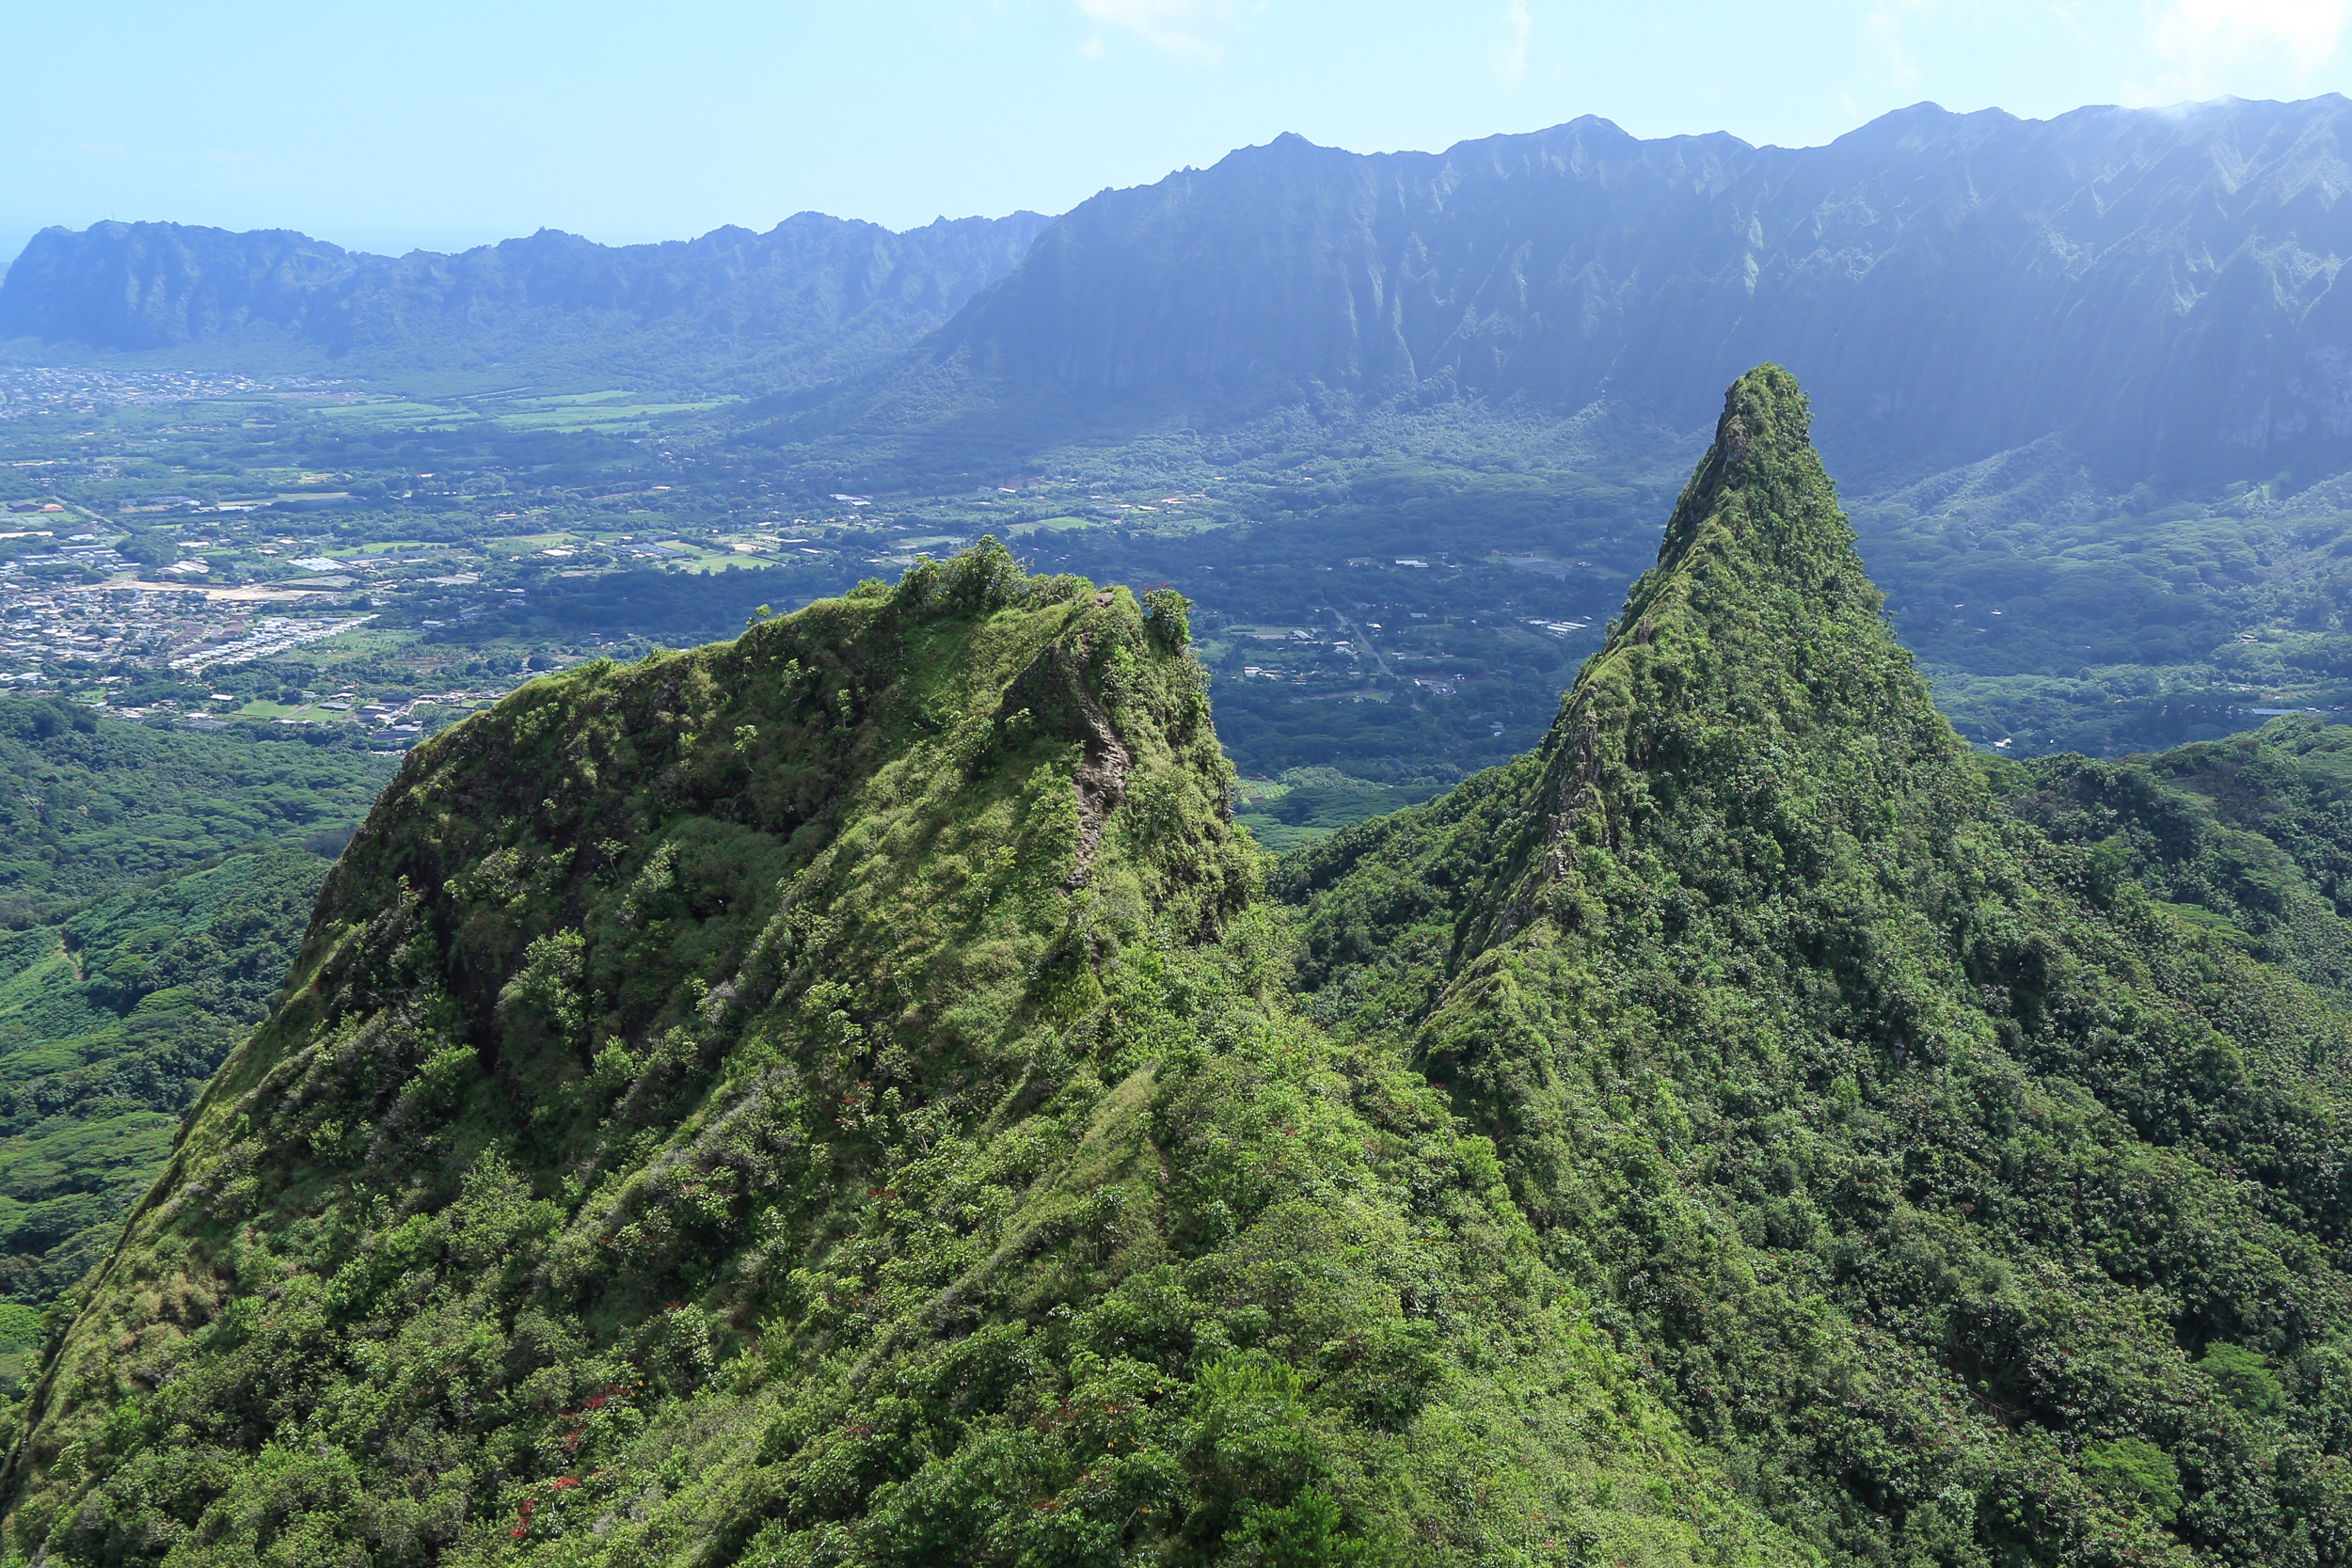 View from the first peak looking out on the second and third peaks with the Ko'olau Mountains in the background.